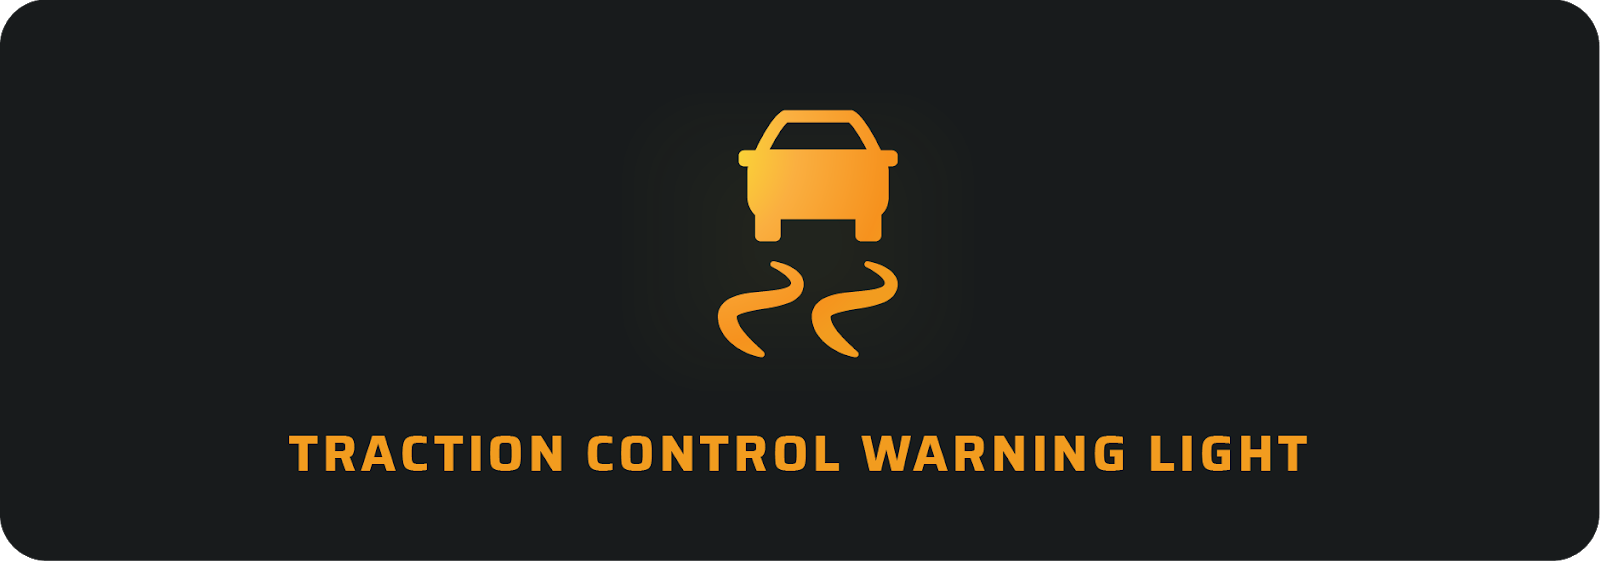 Traction control warning light